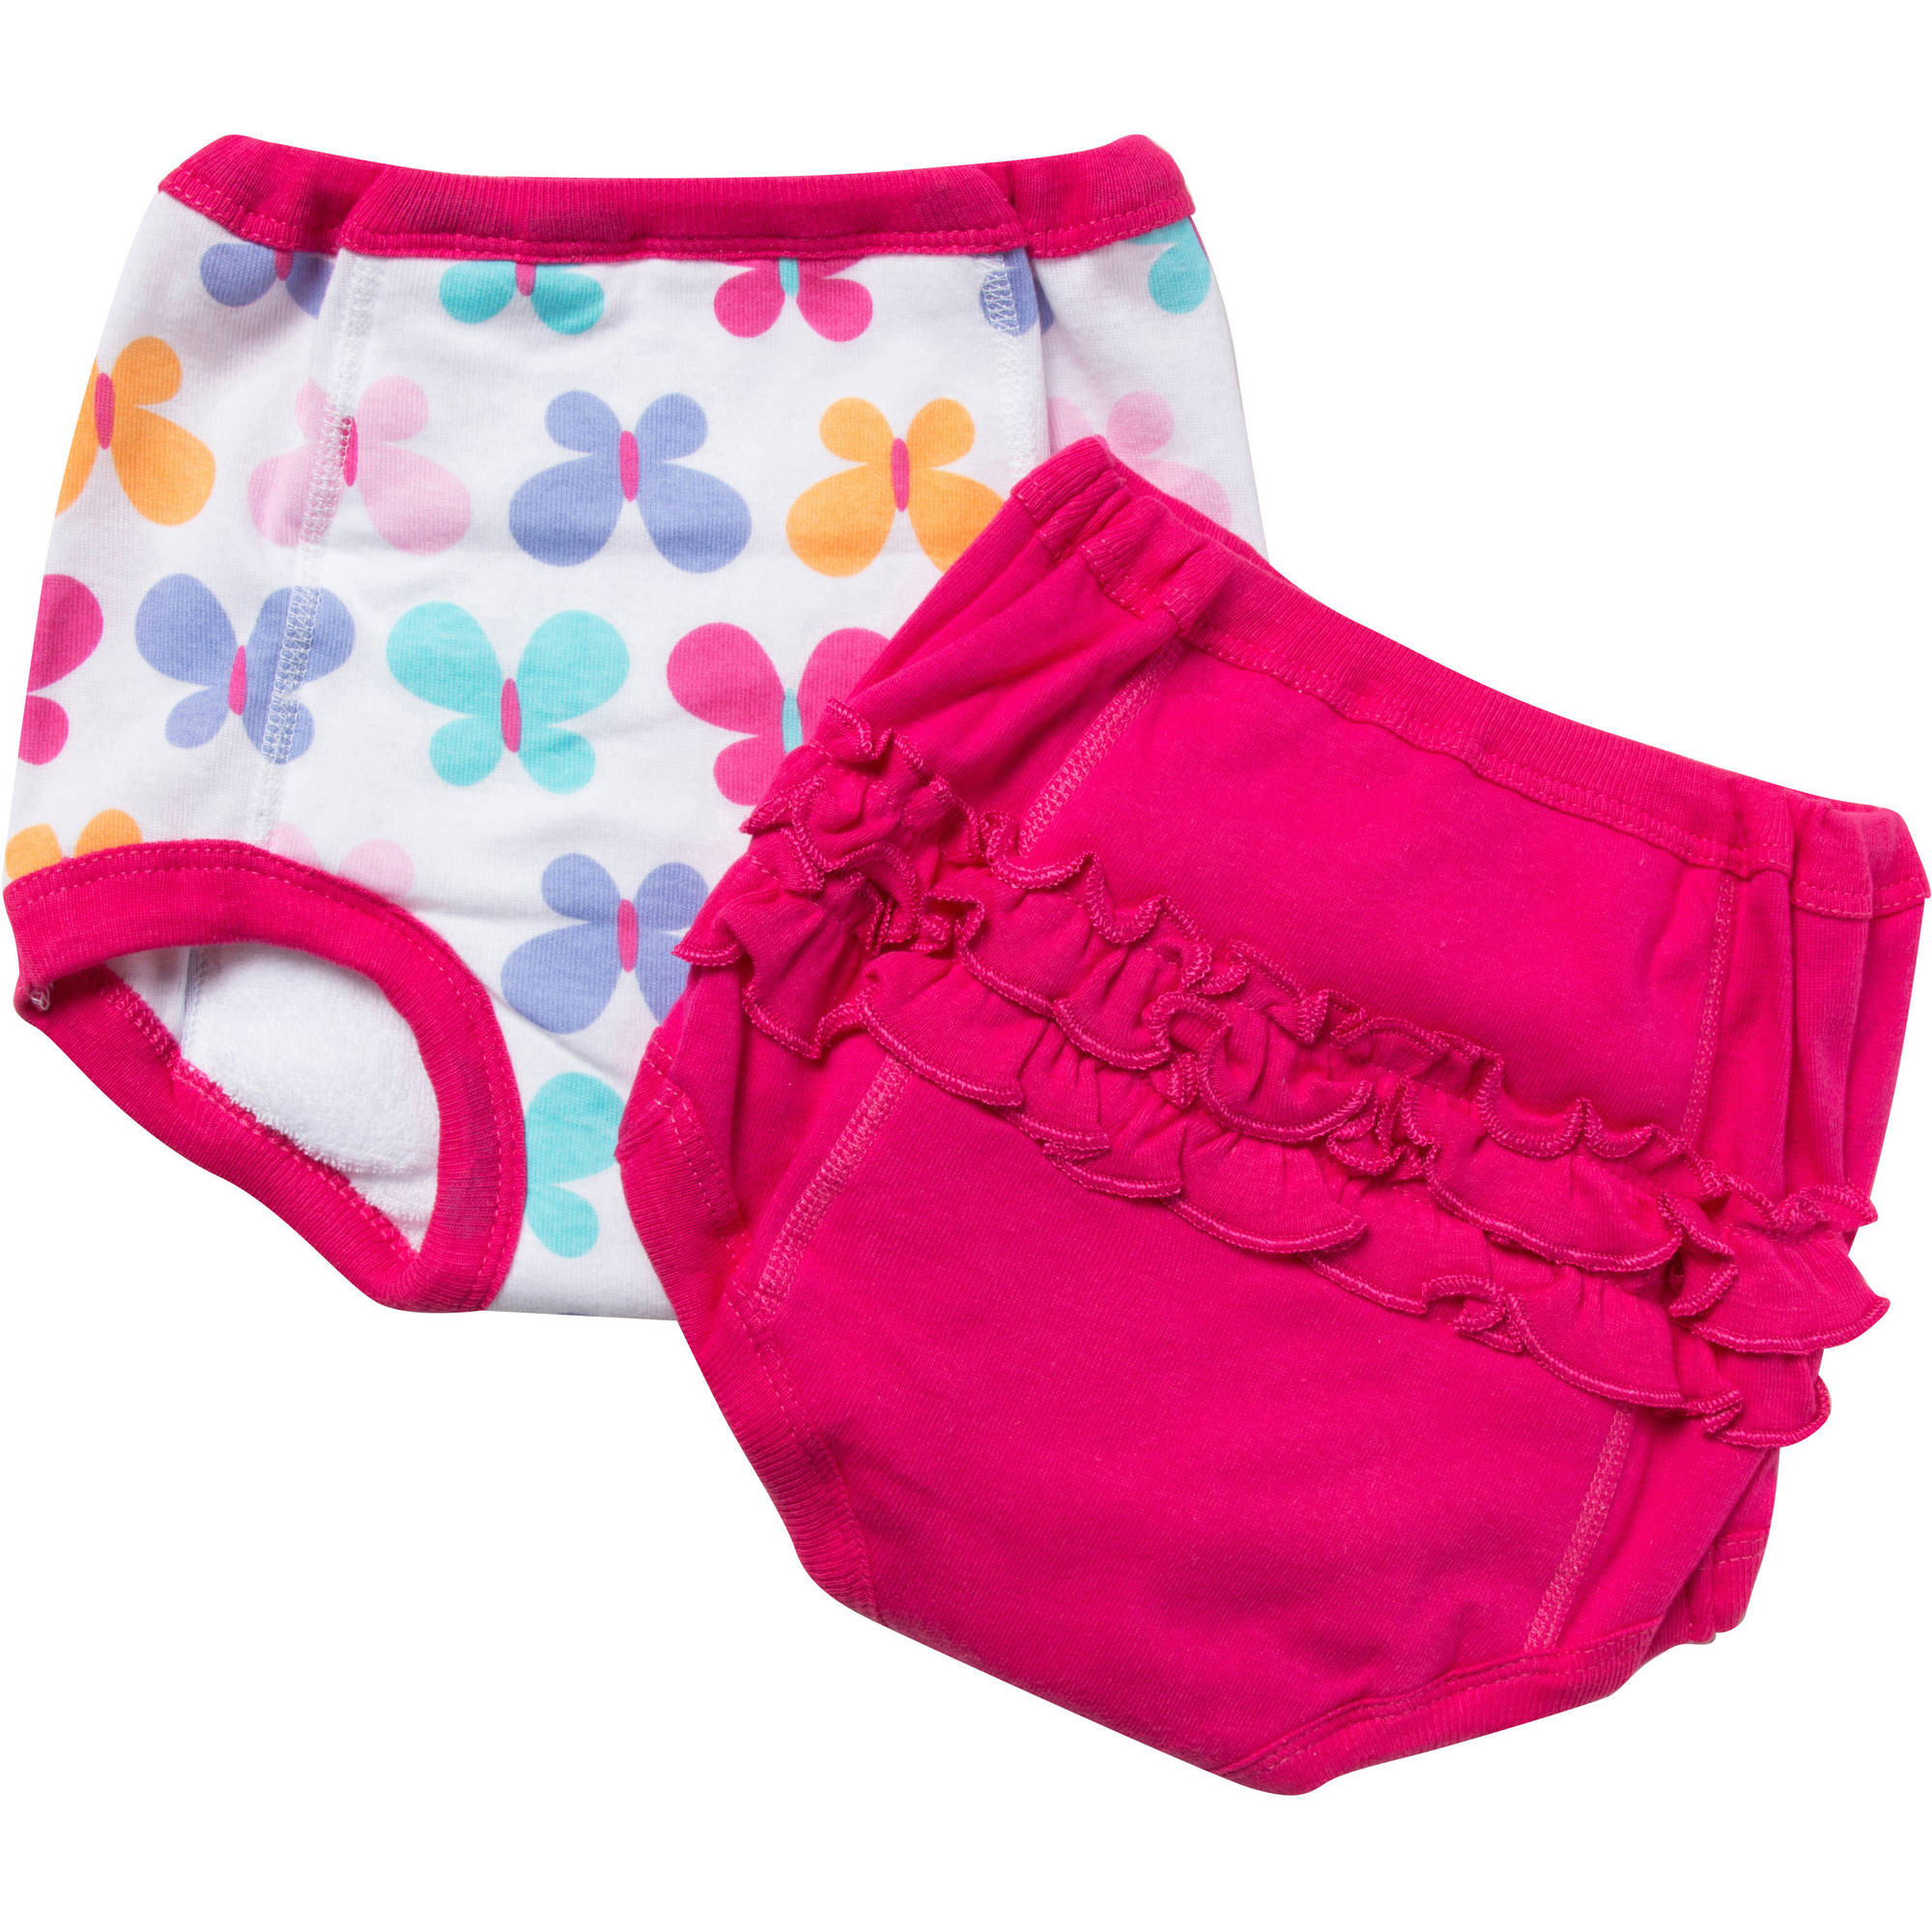 Gerber Toddler Girl's Training Pants With Terry & Peva Lining, 2-Pack